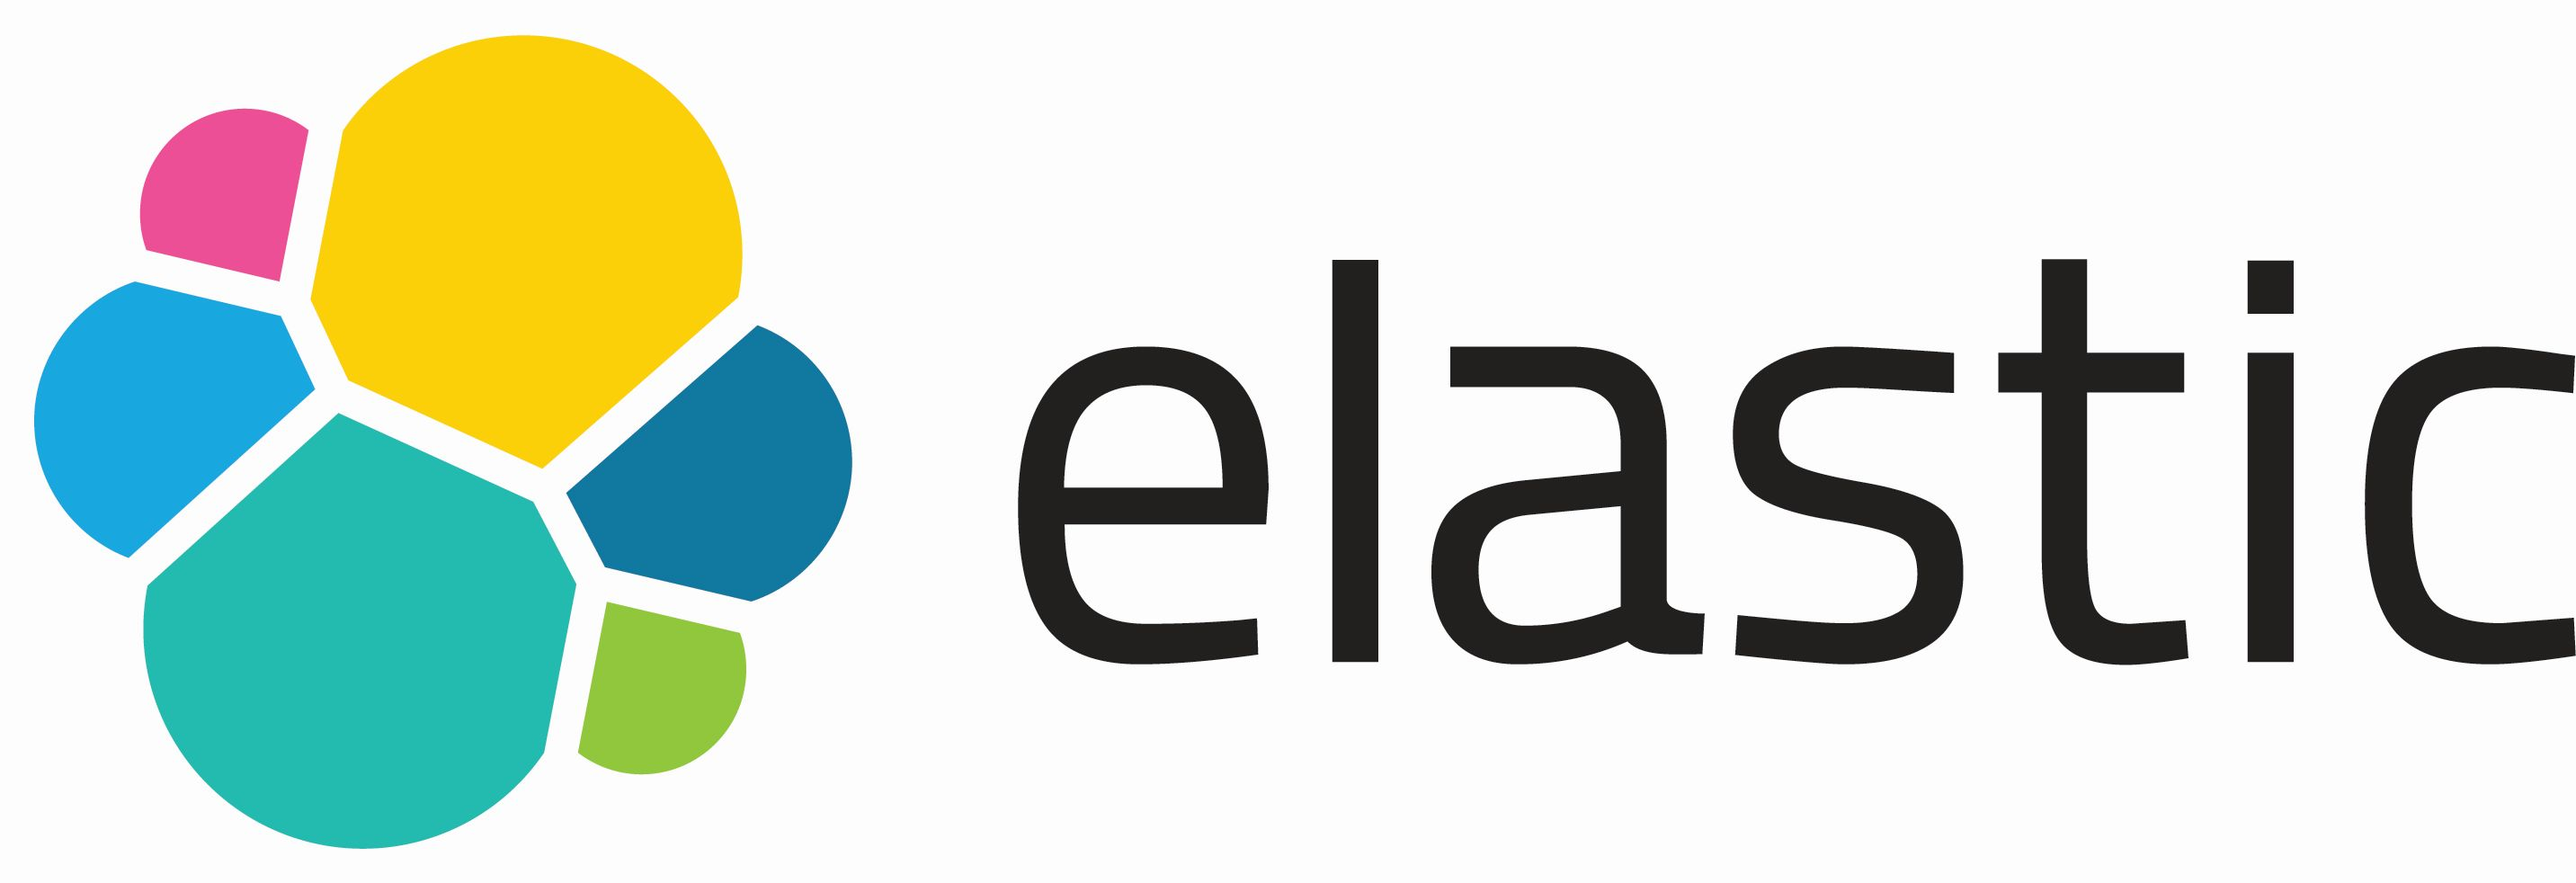 elastic-logo-H-full color (2)_resized.jpg